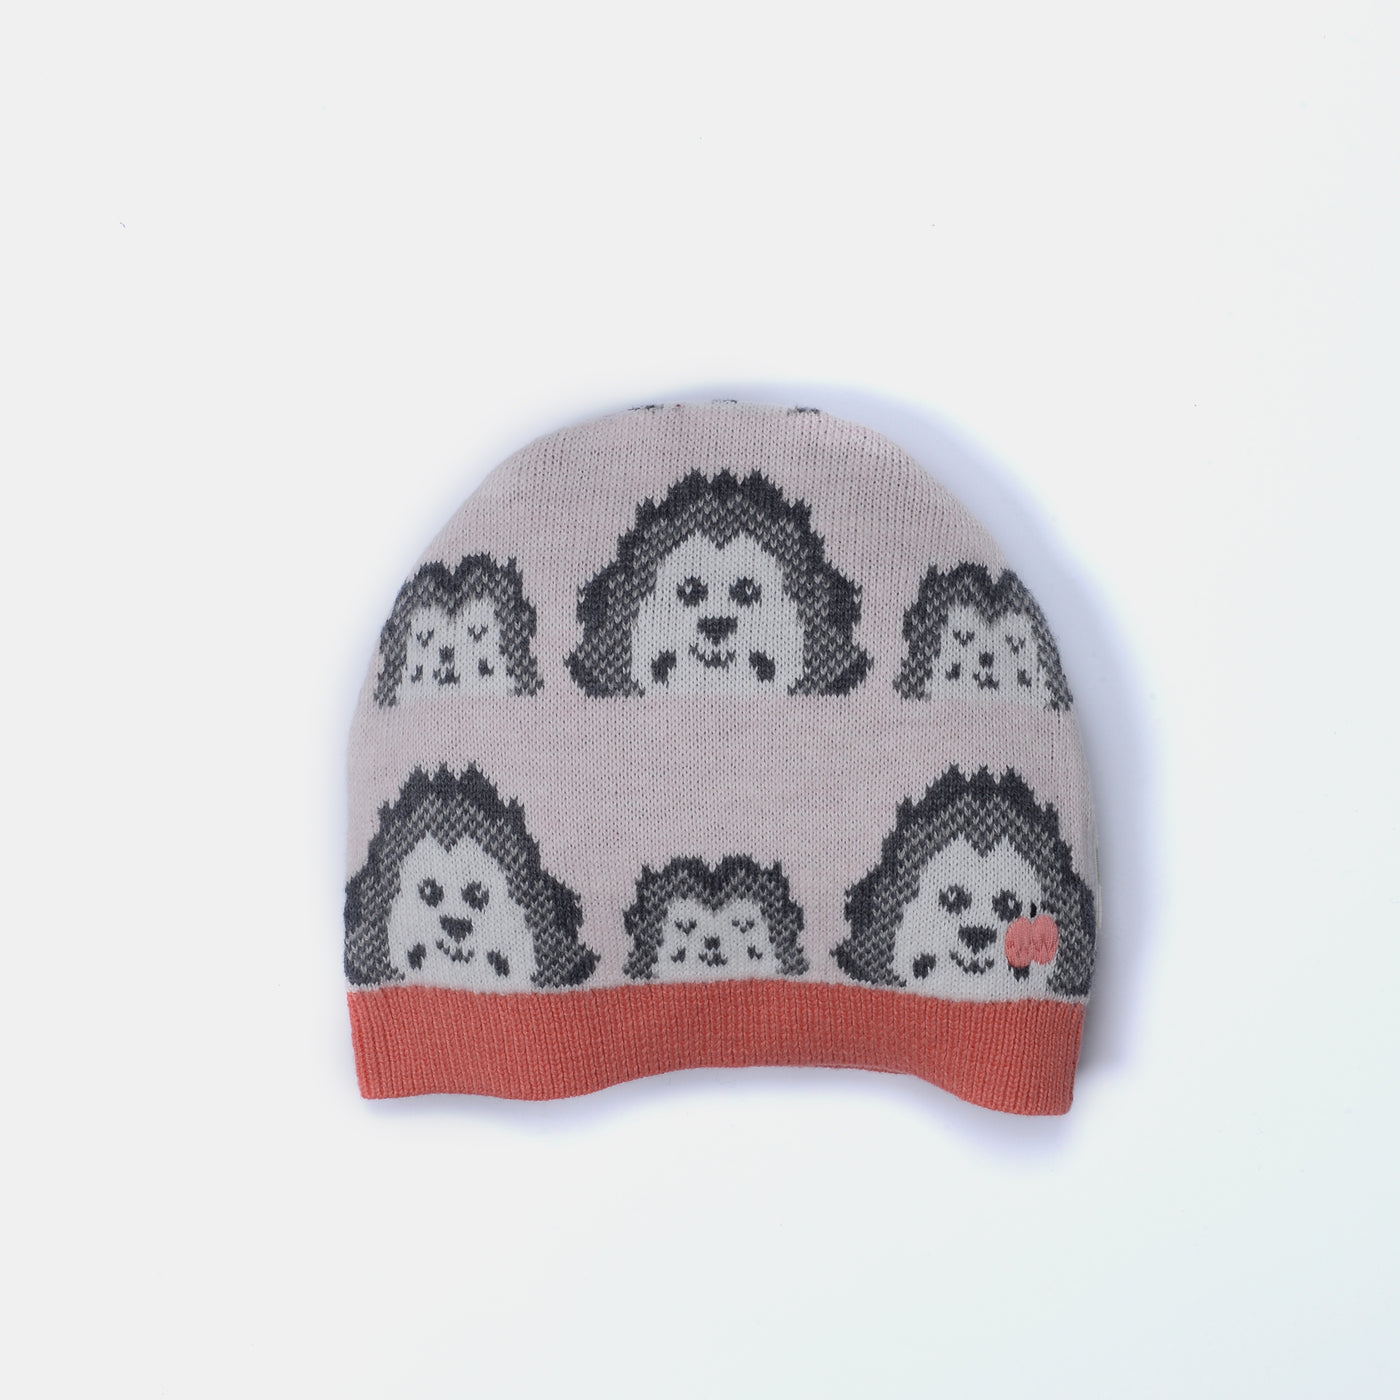 L-HAZEL - Mini Spikey Hedghog Hat - Baby Girl - Pink calico